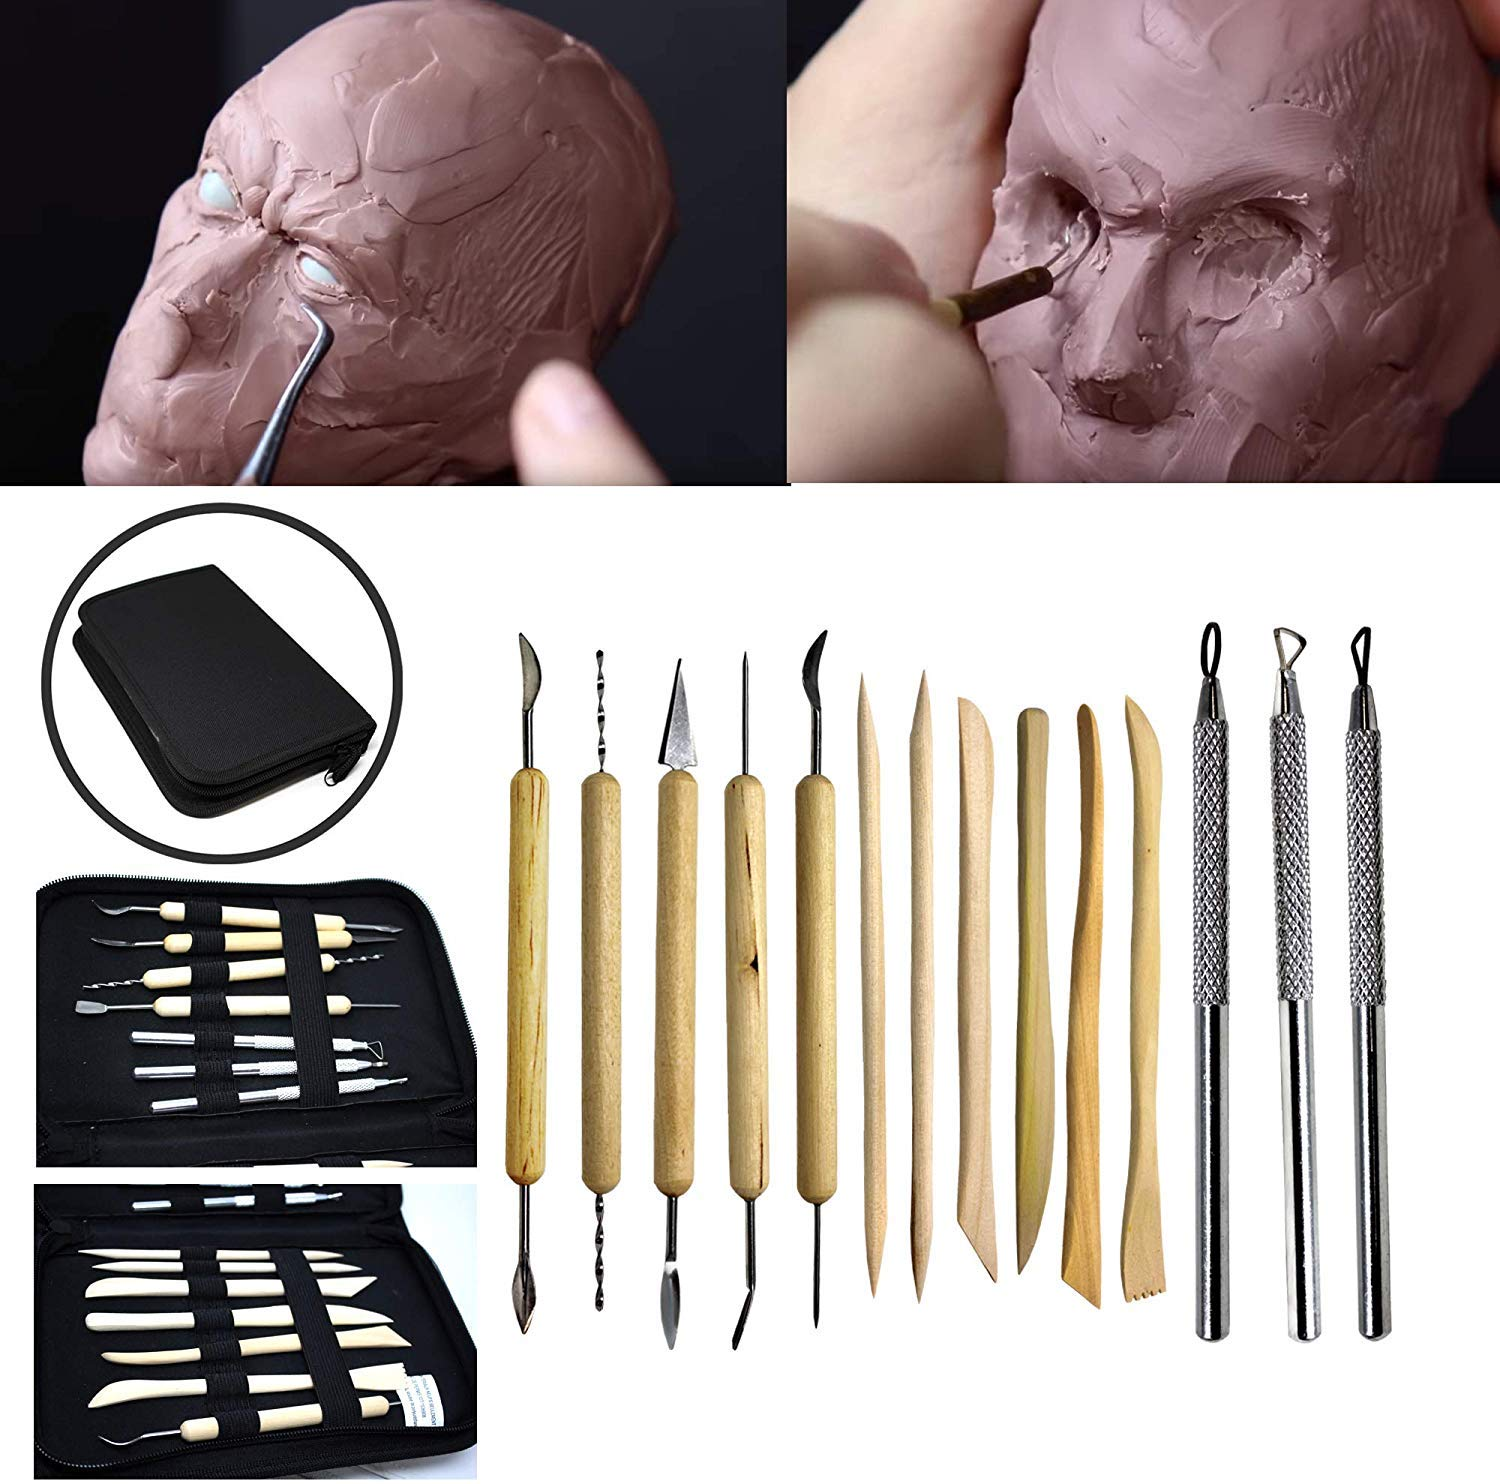 Wax Candles Perfect for Polymer Ceramic Clay 14 pcs Sculpture Tools Clay Double-Sided Design Pottery Tools with Black Nylon Zipped Case Durable Wood /& Quality Metal Clay Modelling Tools